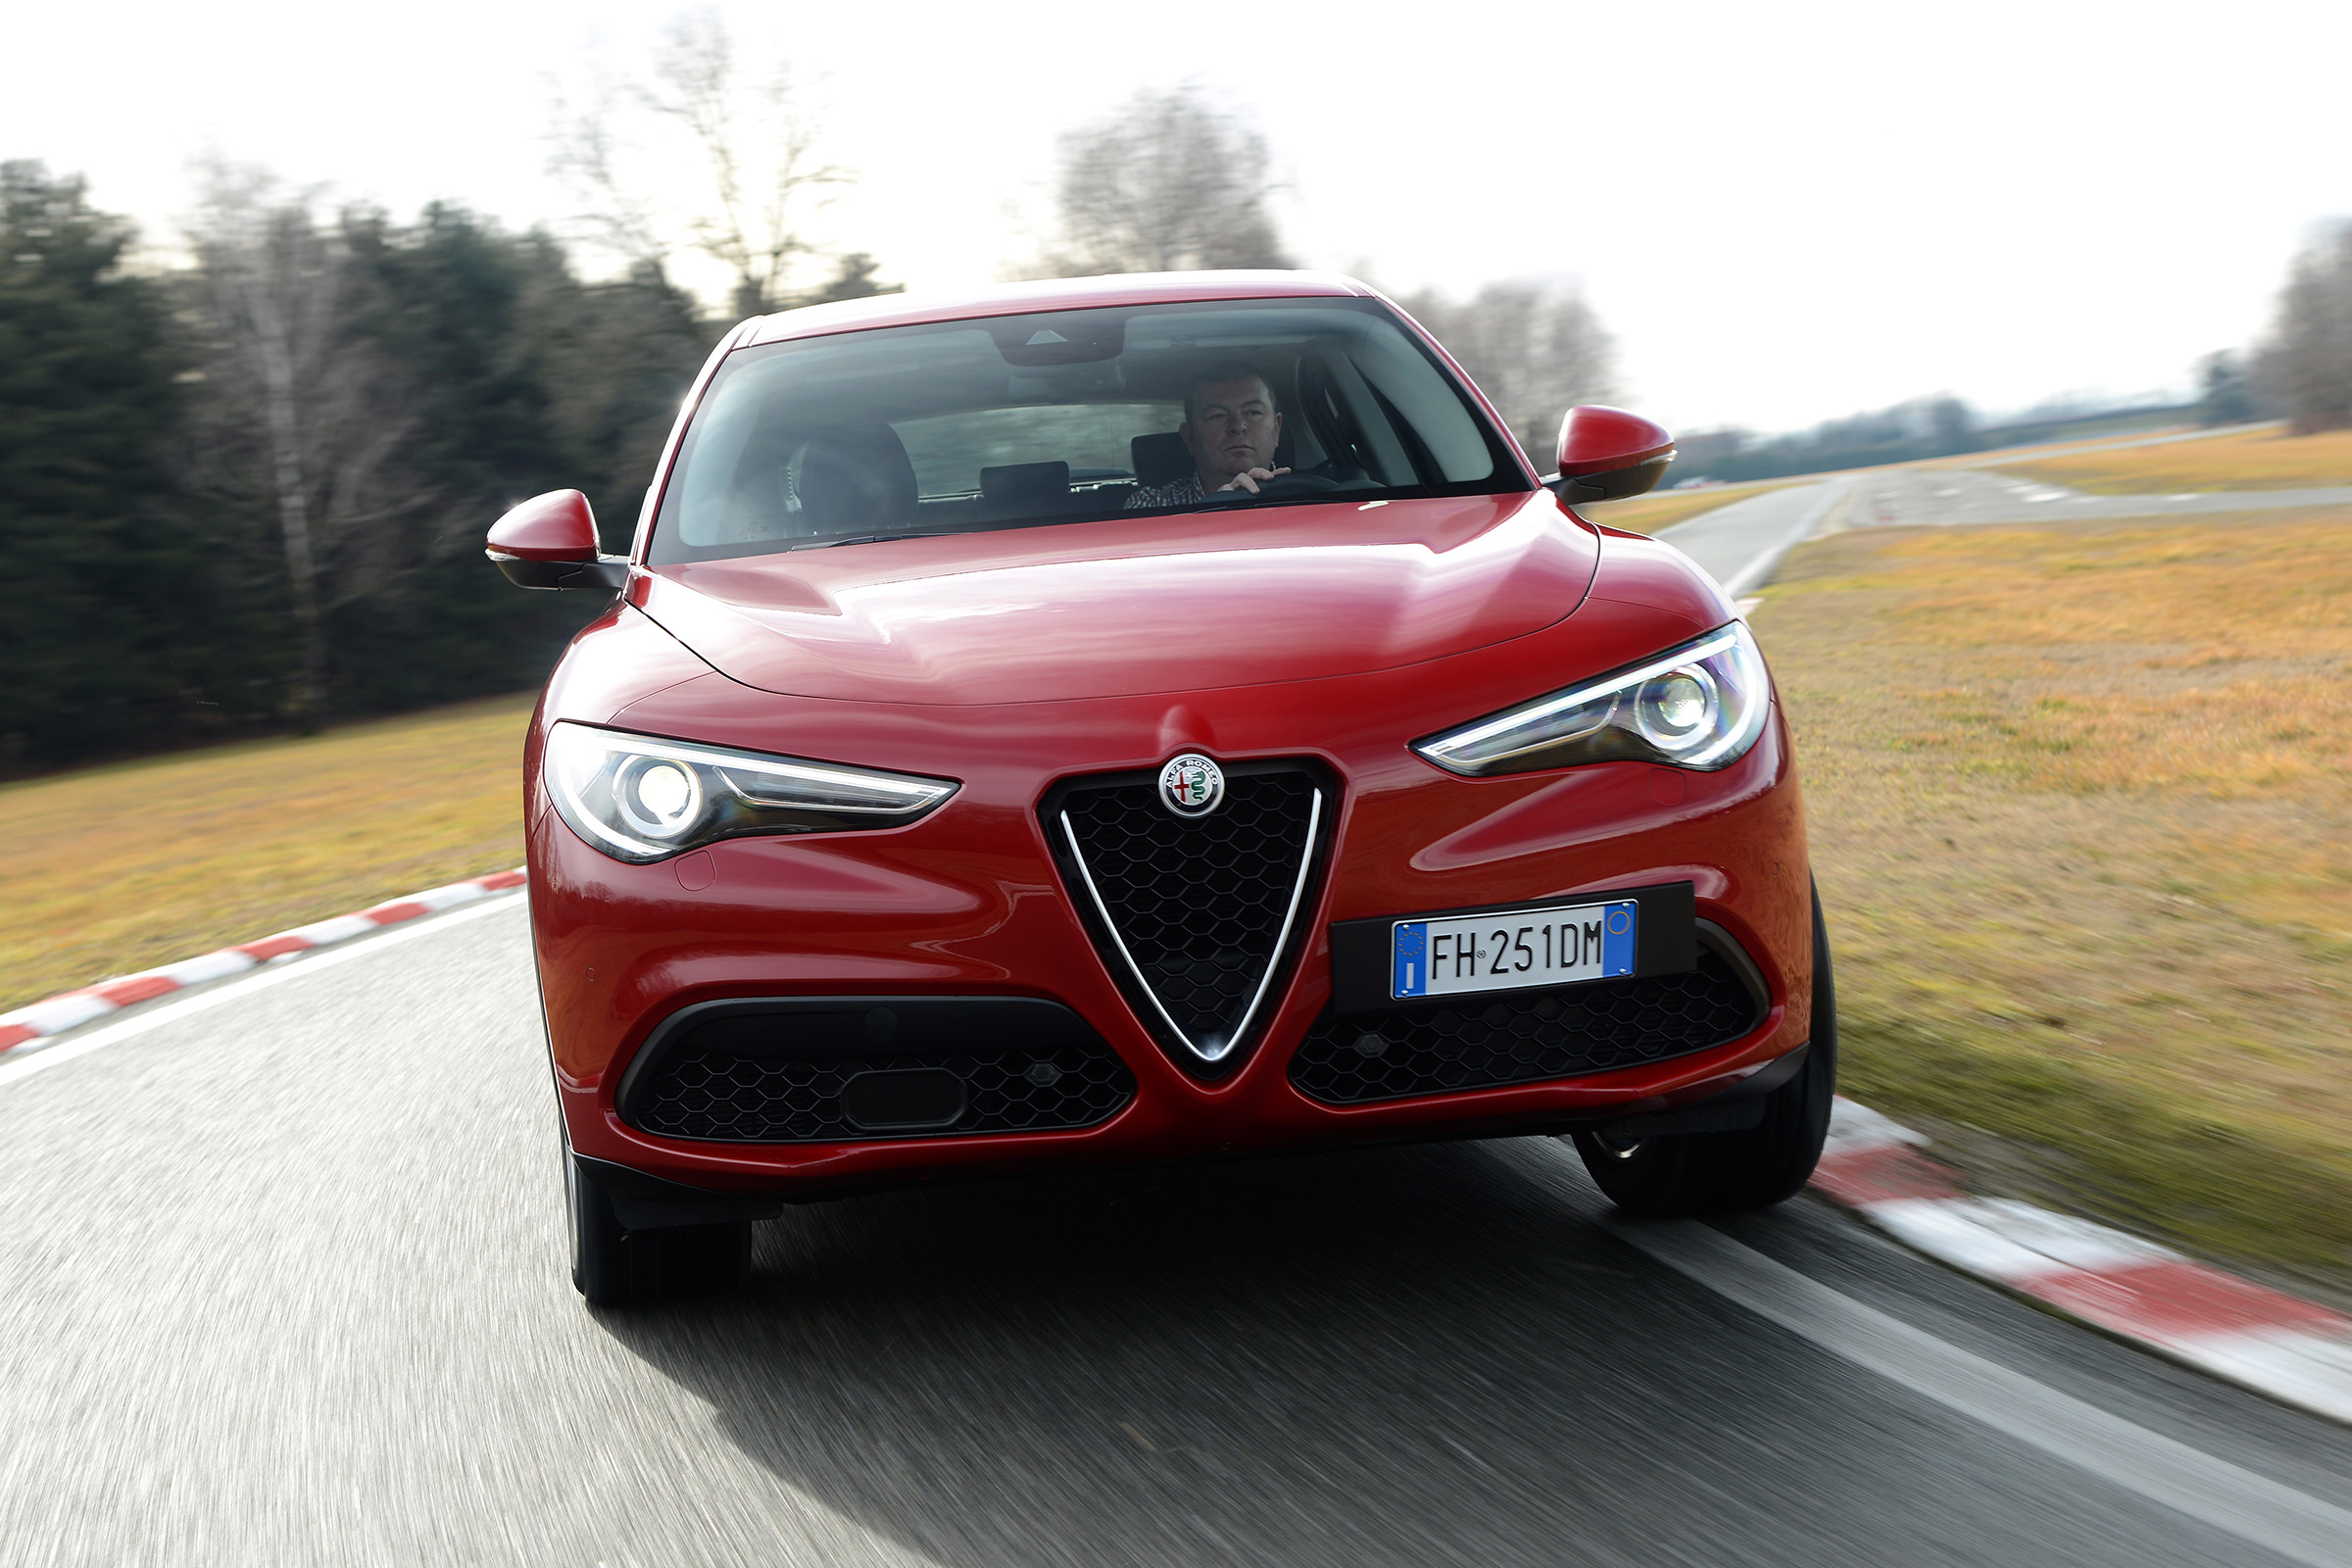 2017 Alfa Romeo Stelvio Test Drive Front View (Photo 20 of 23)